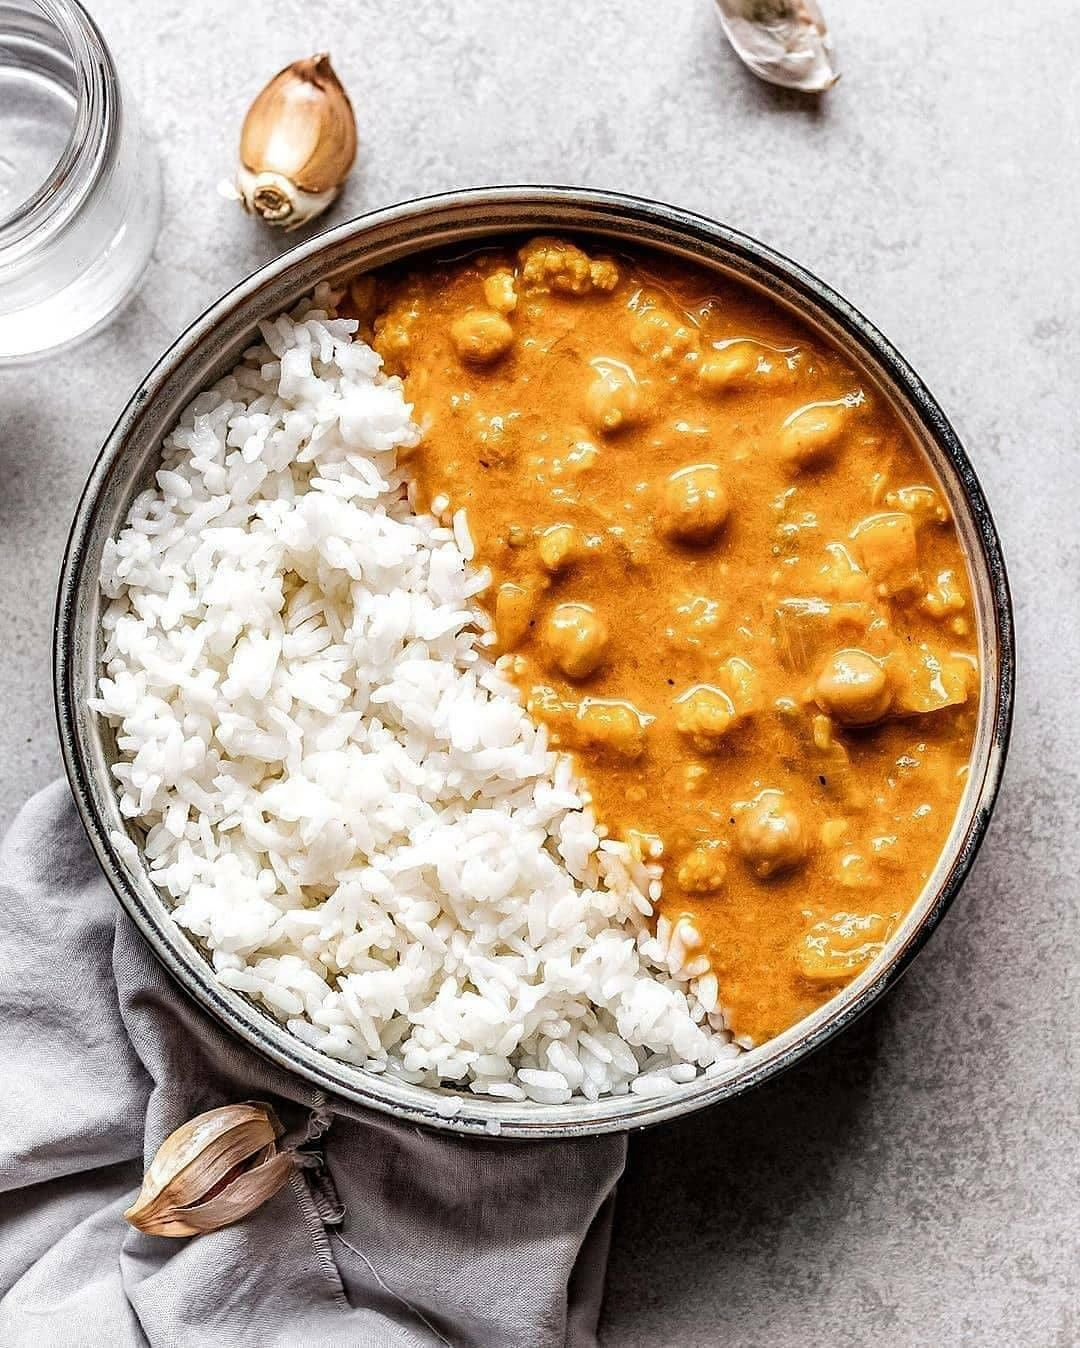 creamy red curry with rice  this dish uses a lot of stap display image  2c74d29a